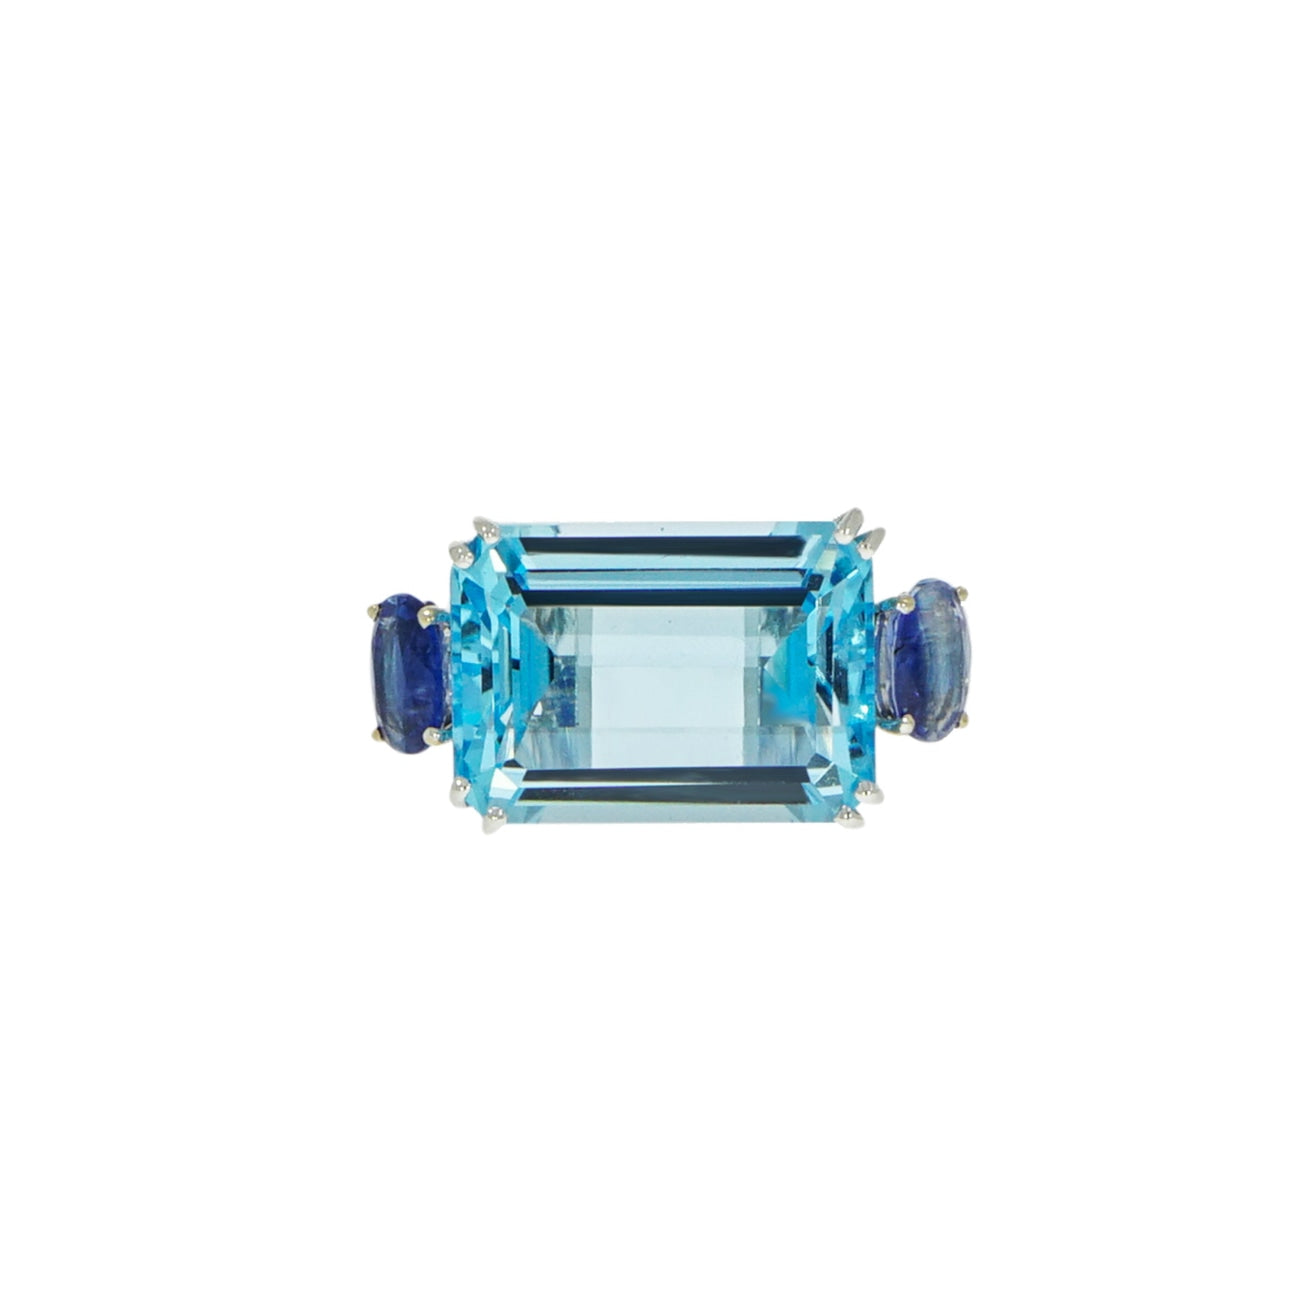 Manfredi Jewels Jewelry - Blue Topaz & Kyanite White Gold Ring | Manfredi Jewels